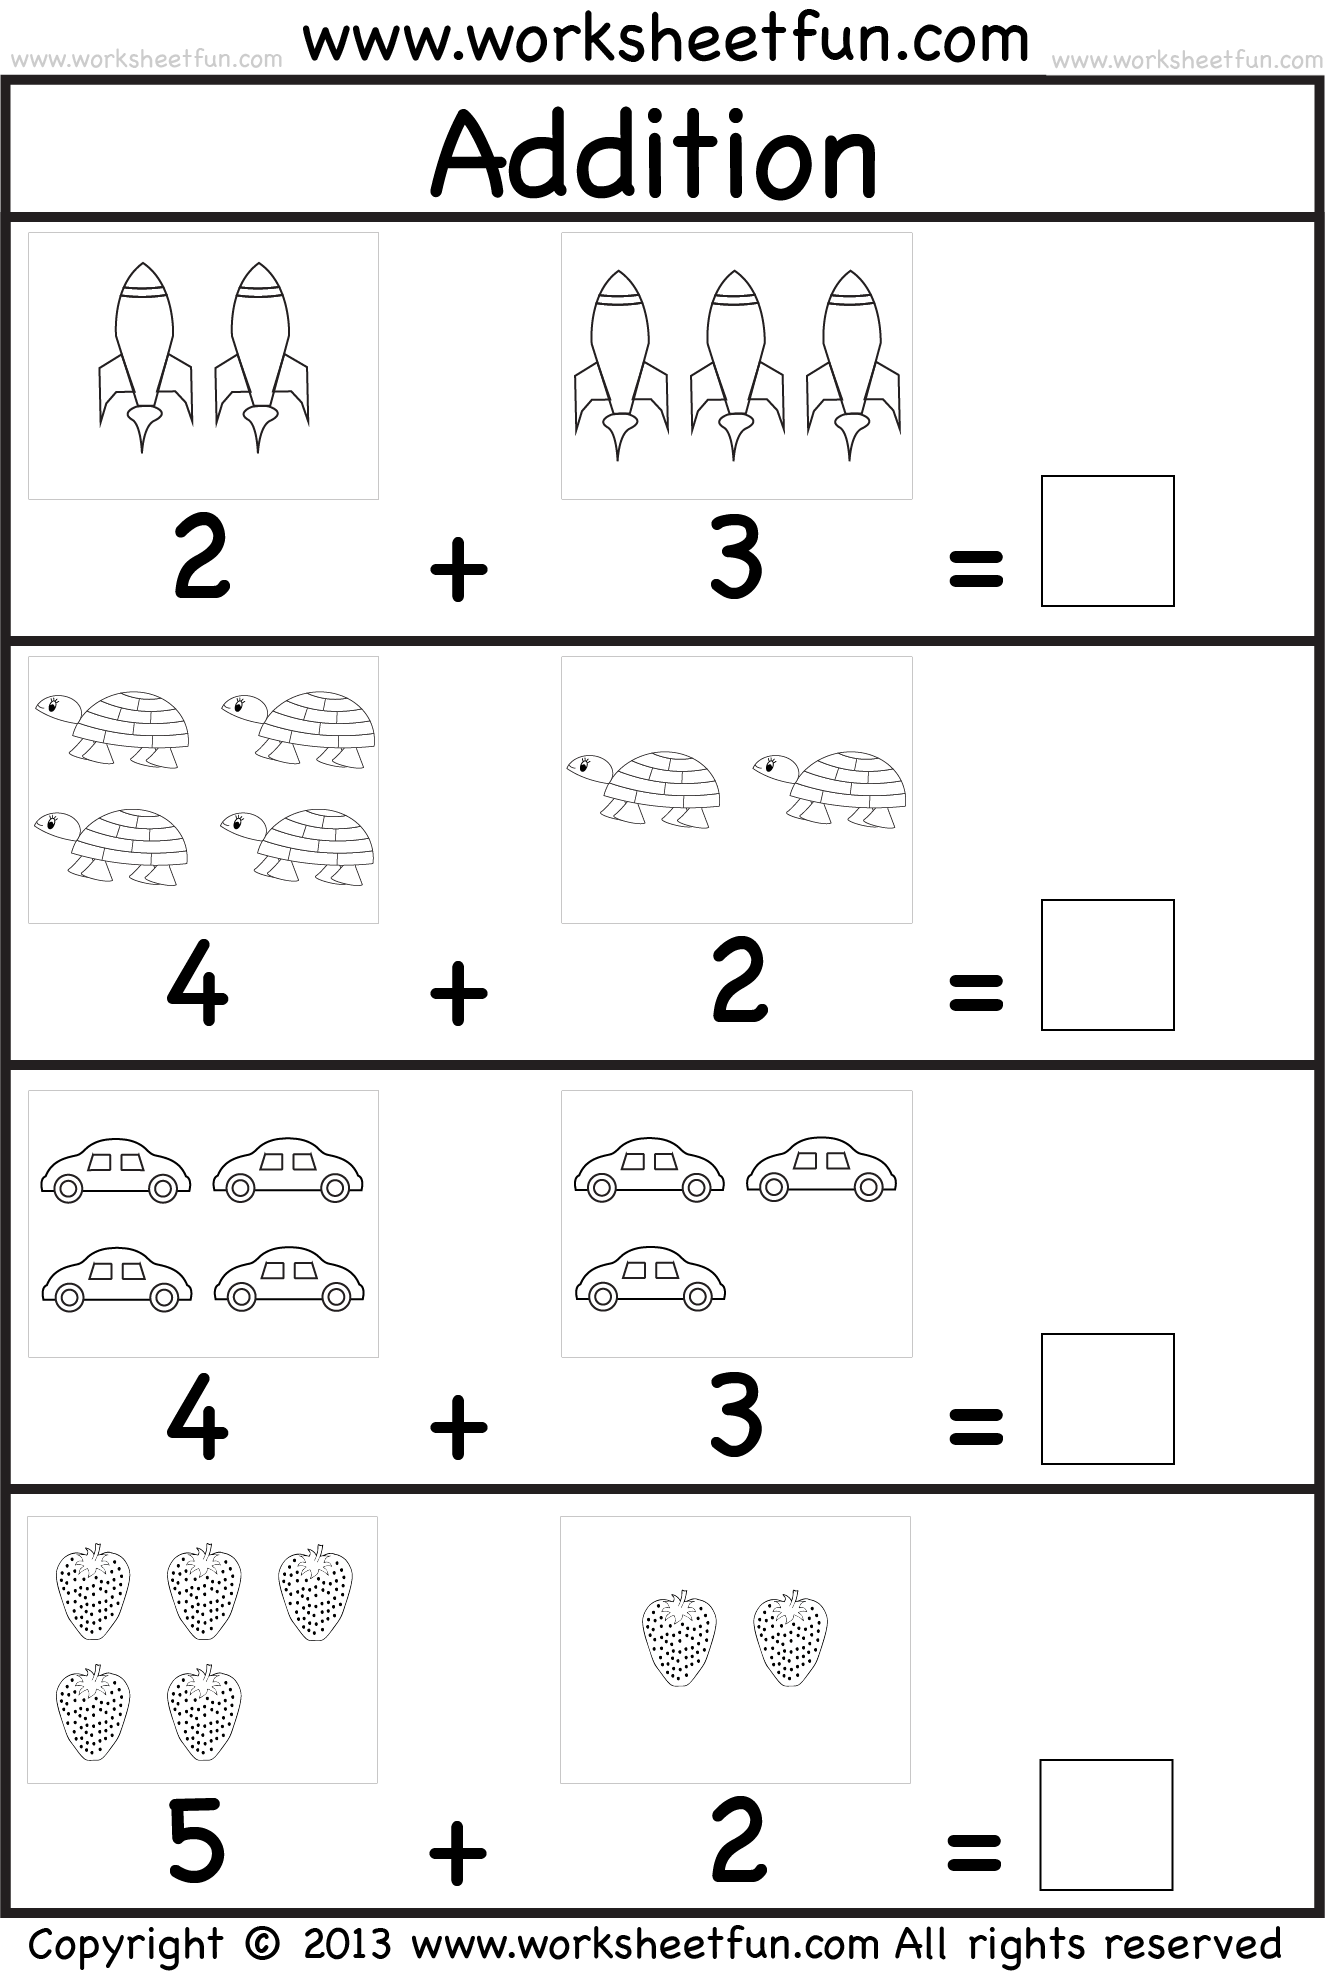 Addition Worksheet This Site Has Great Free Worksheets